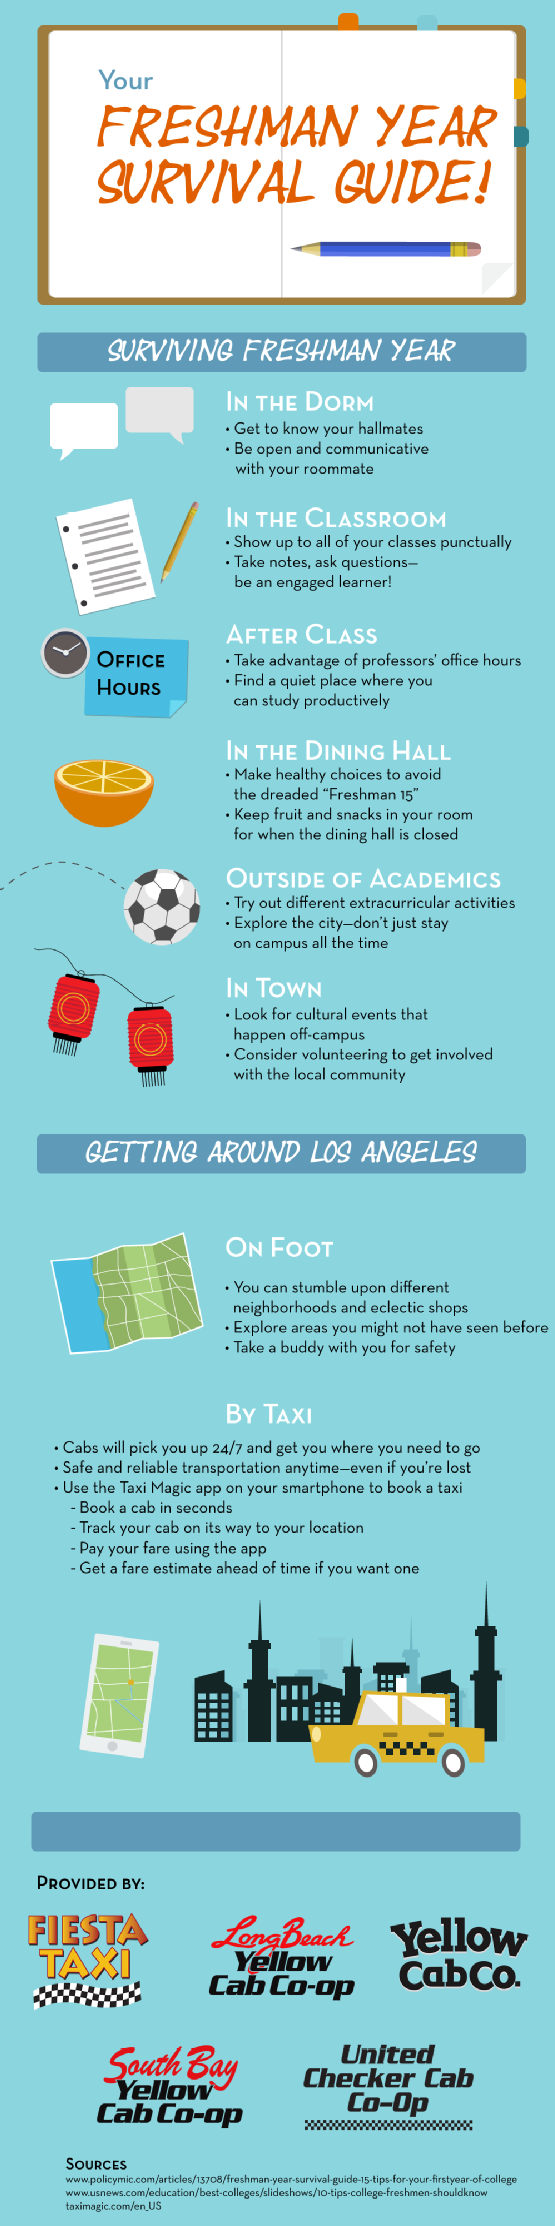 your-freshman-year-survival-guide_52158398a7d05